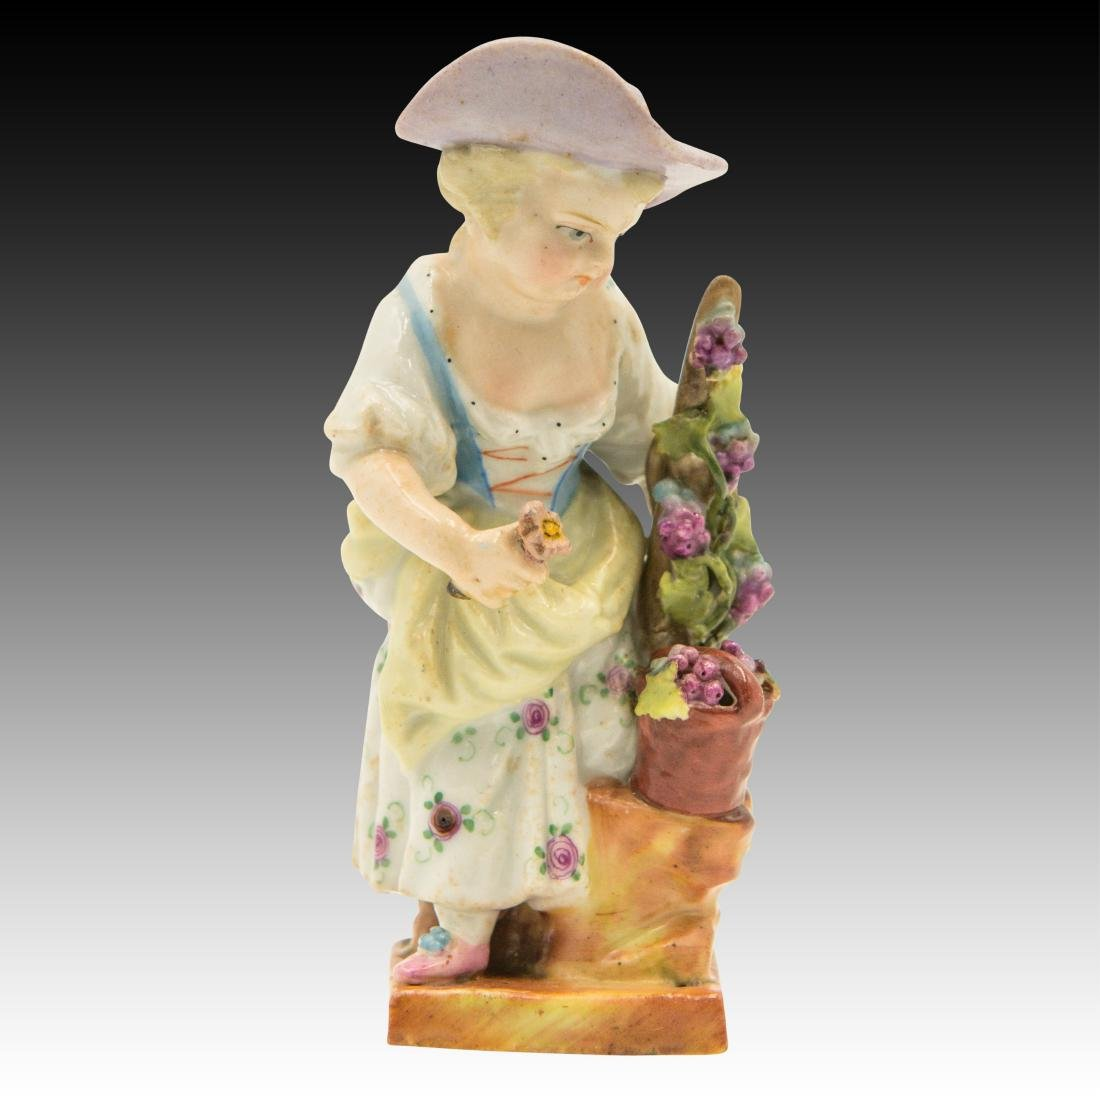 Small Figurine of a Young Girl with Flowers